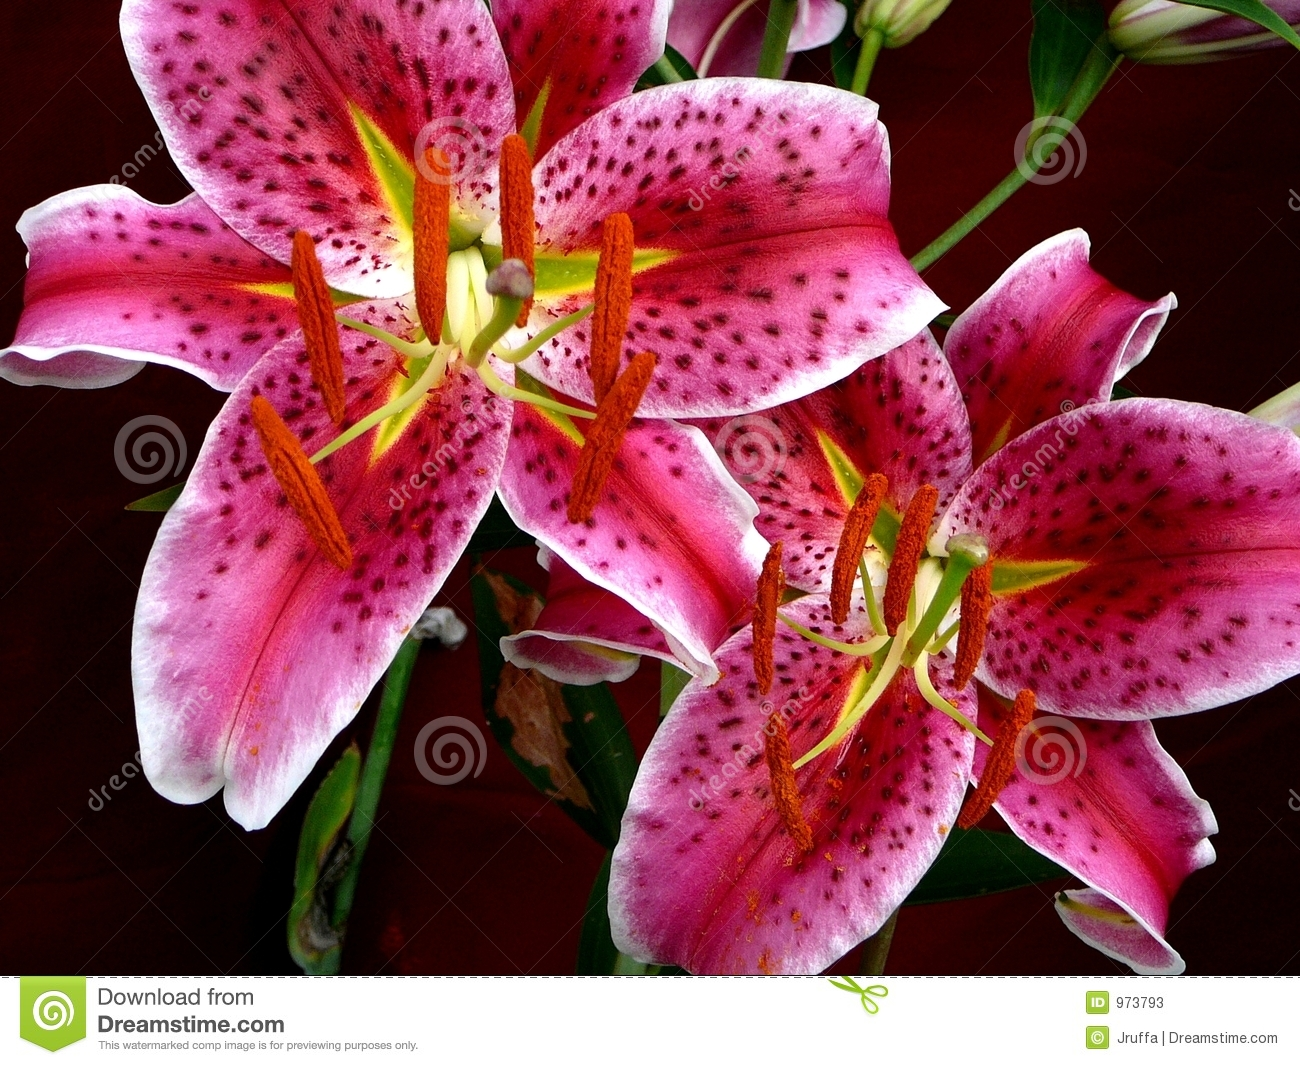 stargazer lily stock photos, images,  pictures   images, Beautiful flower